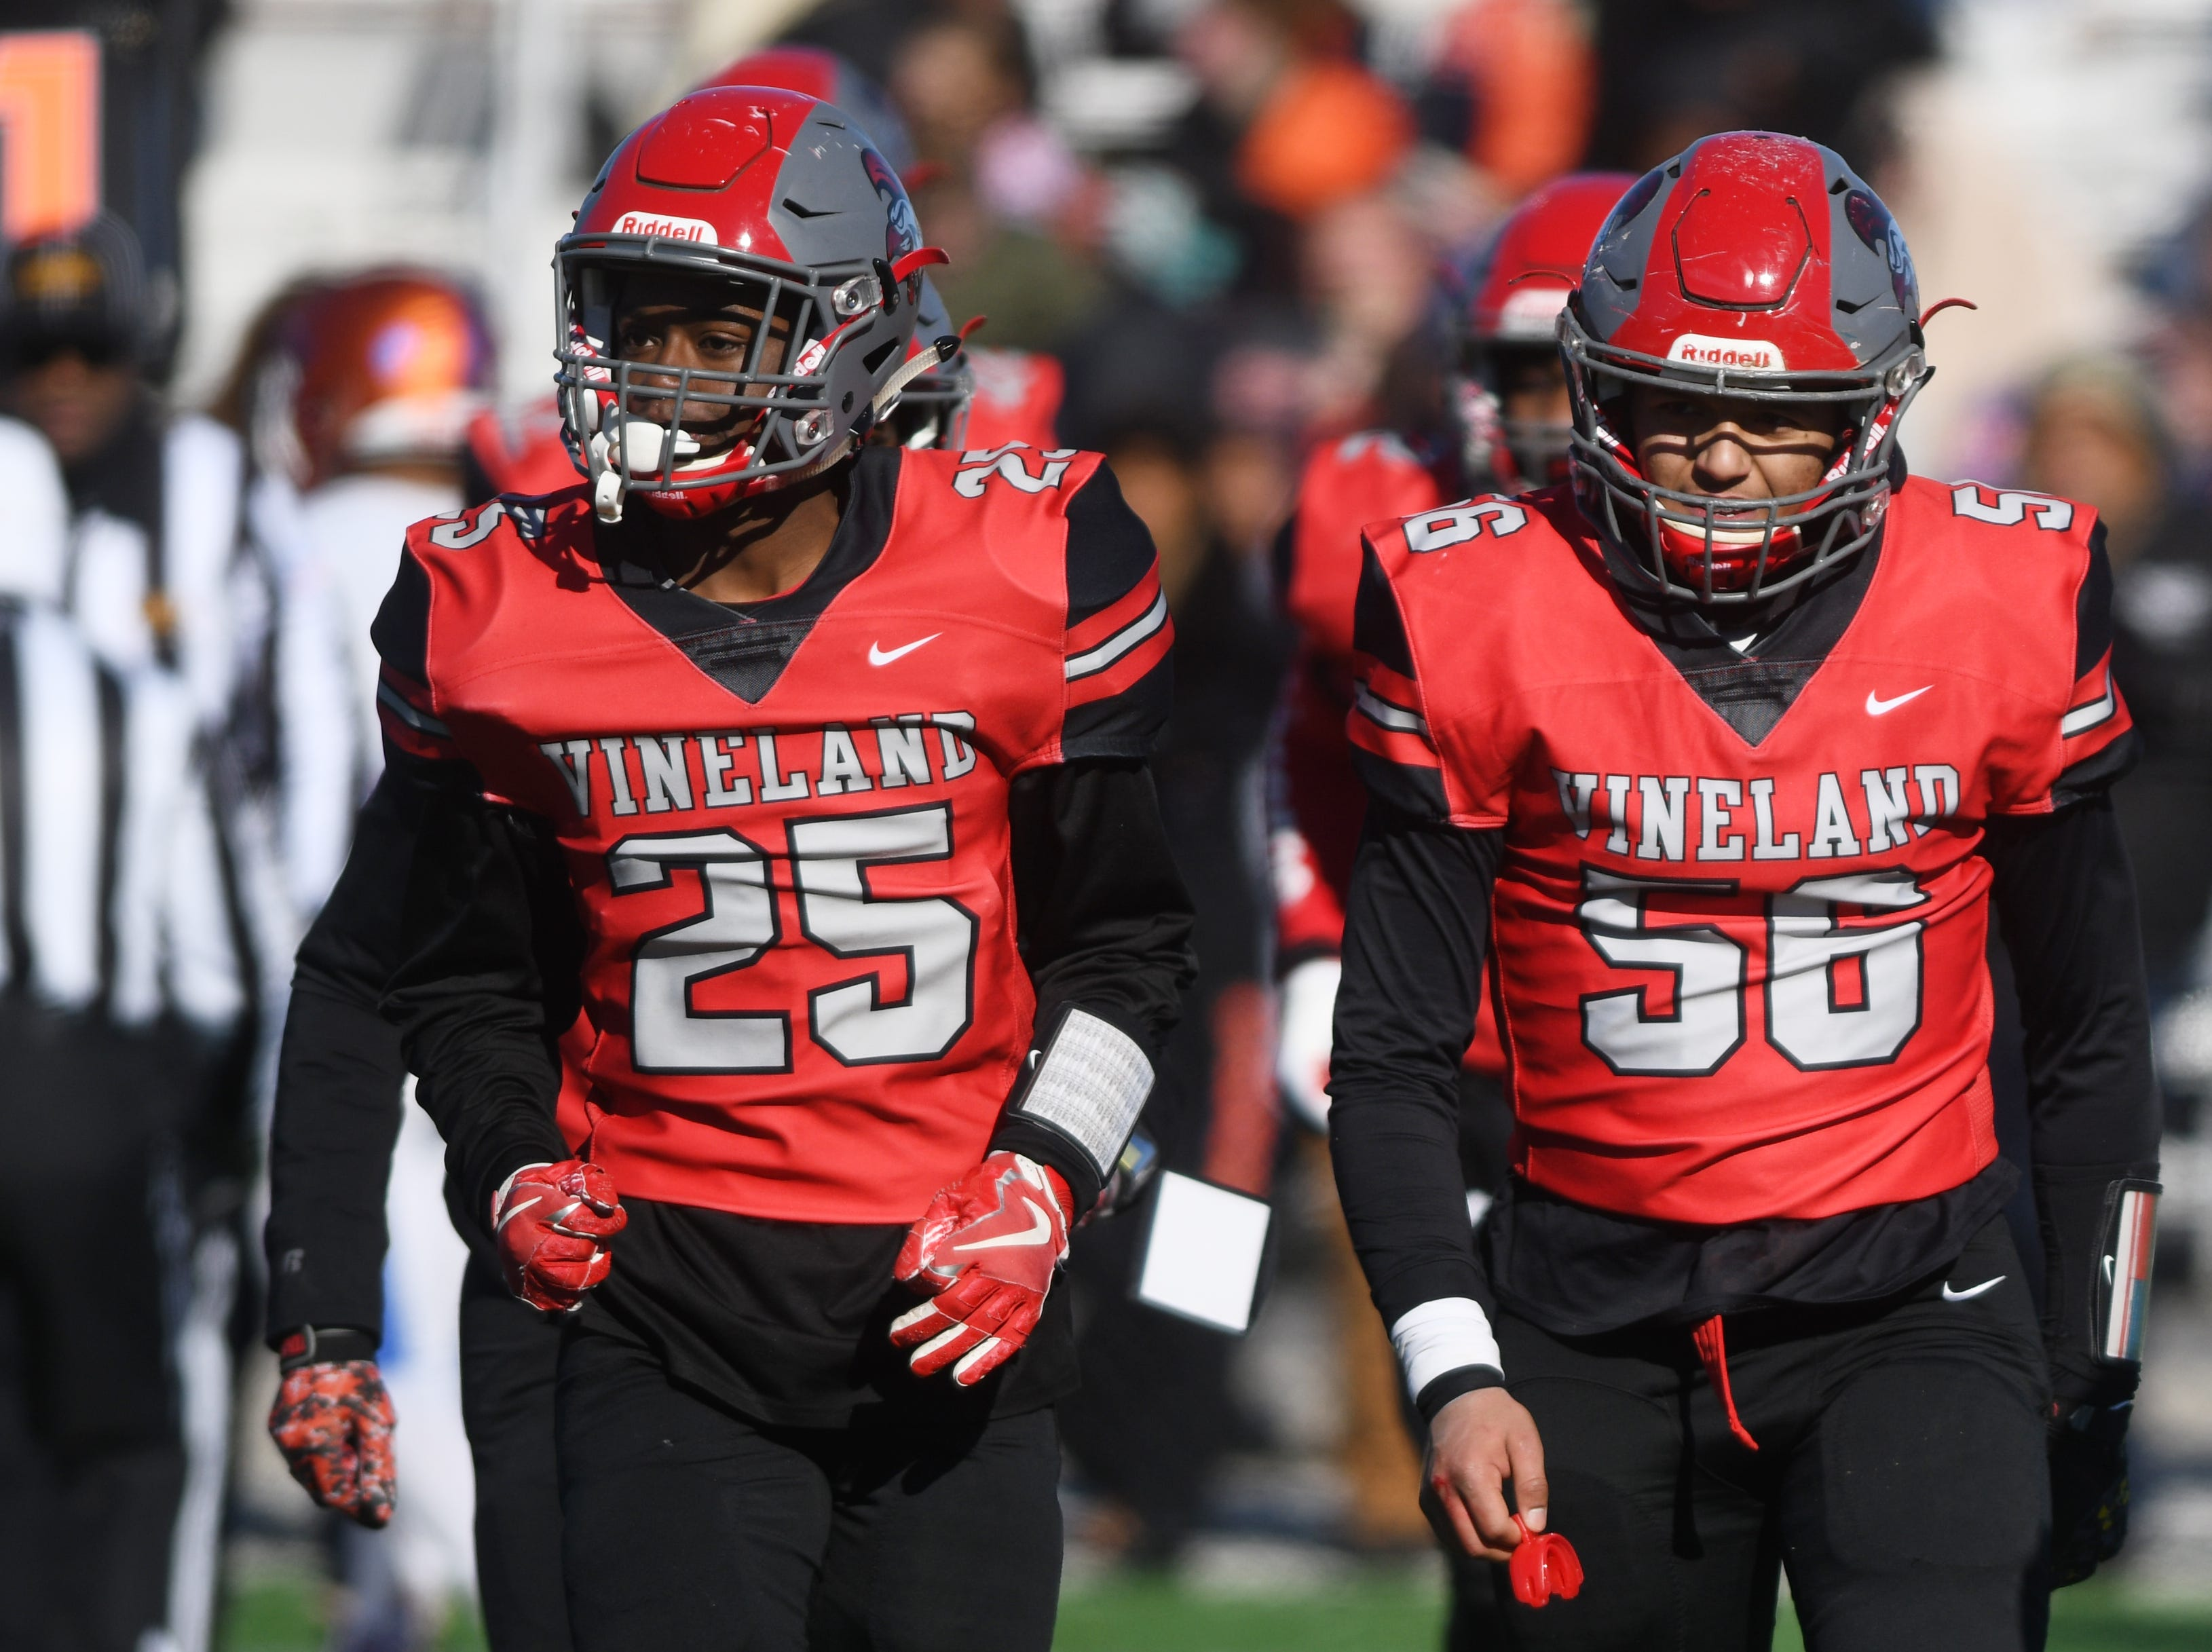 Vineland's Nayshaun Gregory (25) and Josue Delgado Jr. (56) head toward the sideline during a game against Millville at Gittone Stadium on Thanksgiving Day.